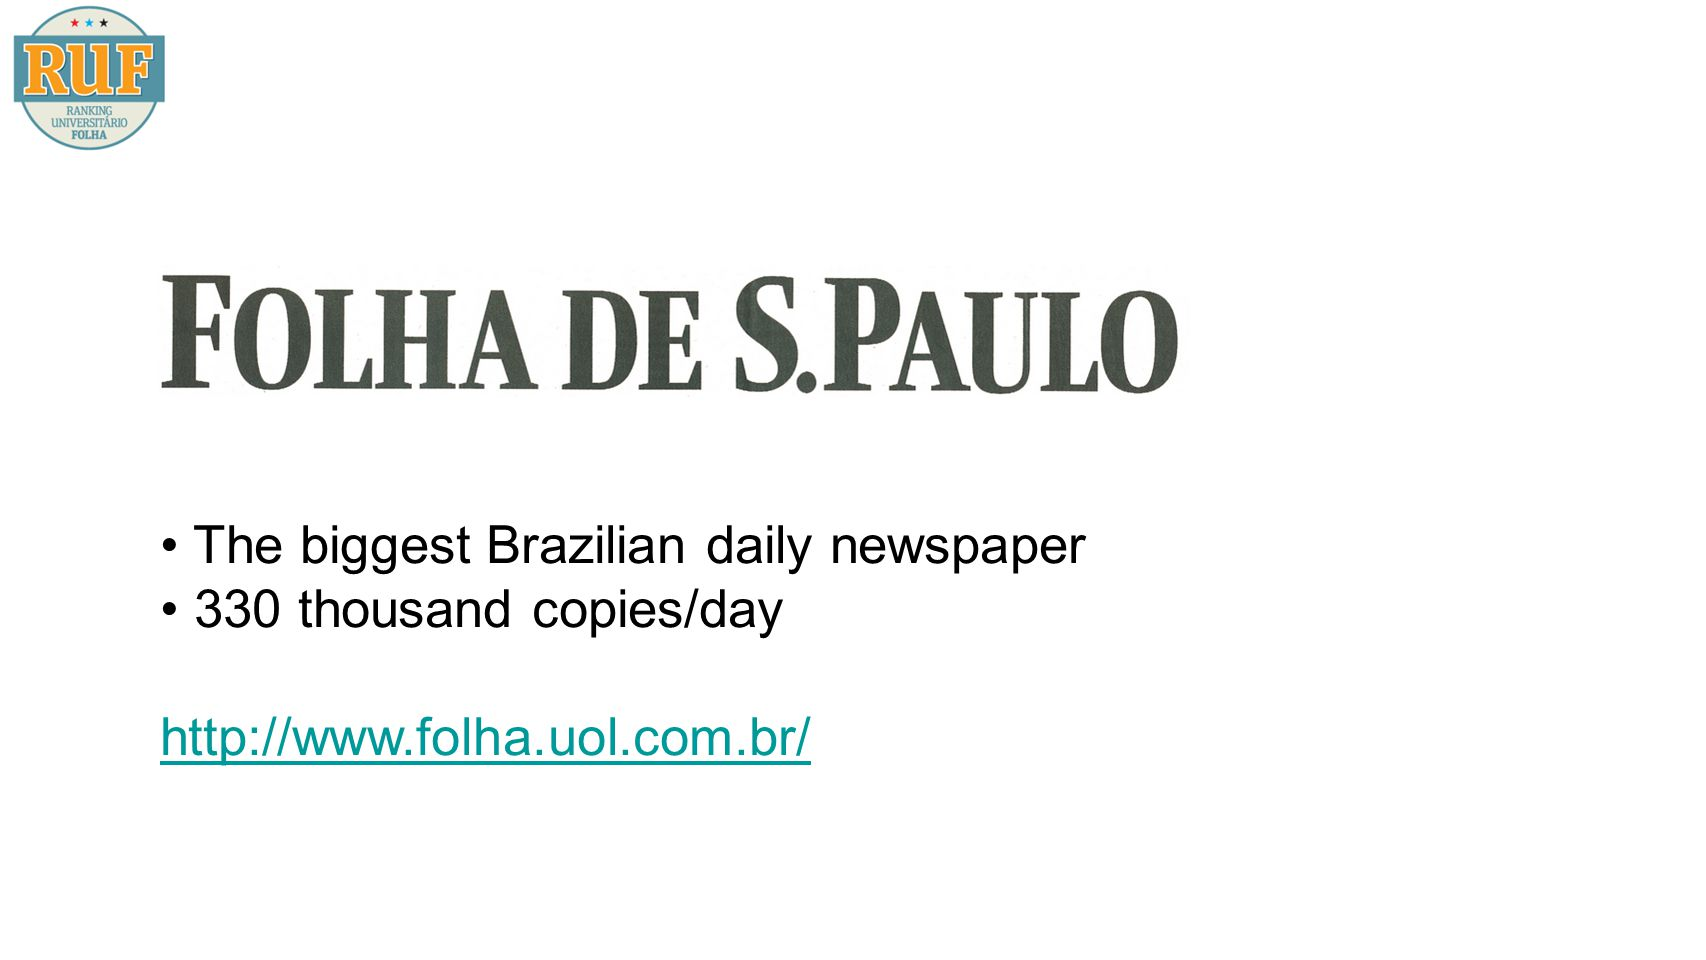 The biggest Brazilian daily newspaper 330 thousand copies/day http://www.folha.uol.com.br/